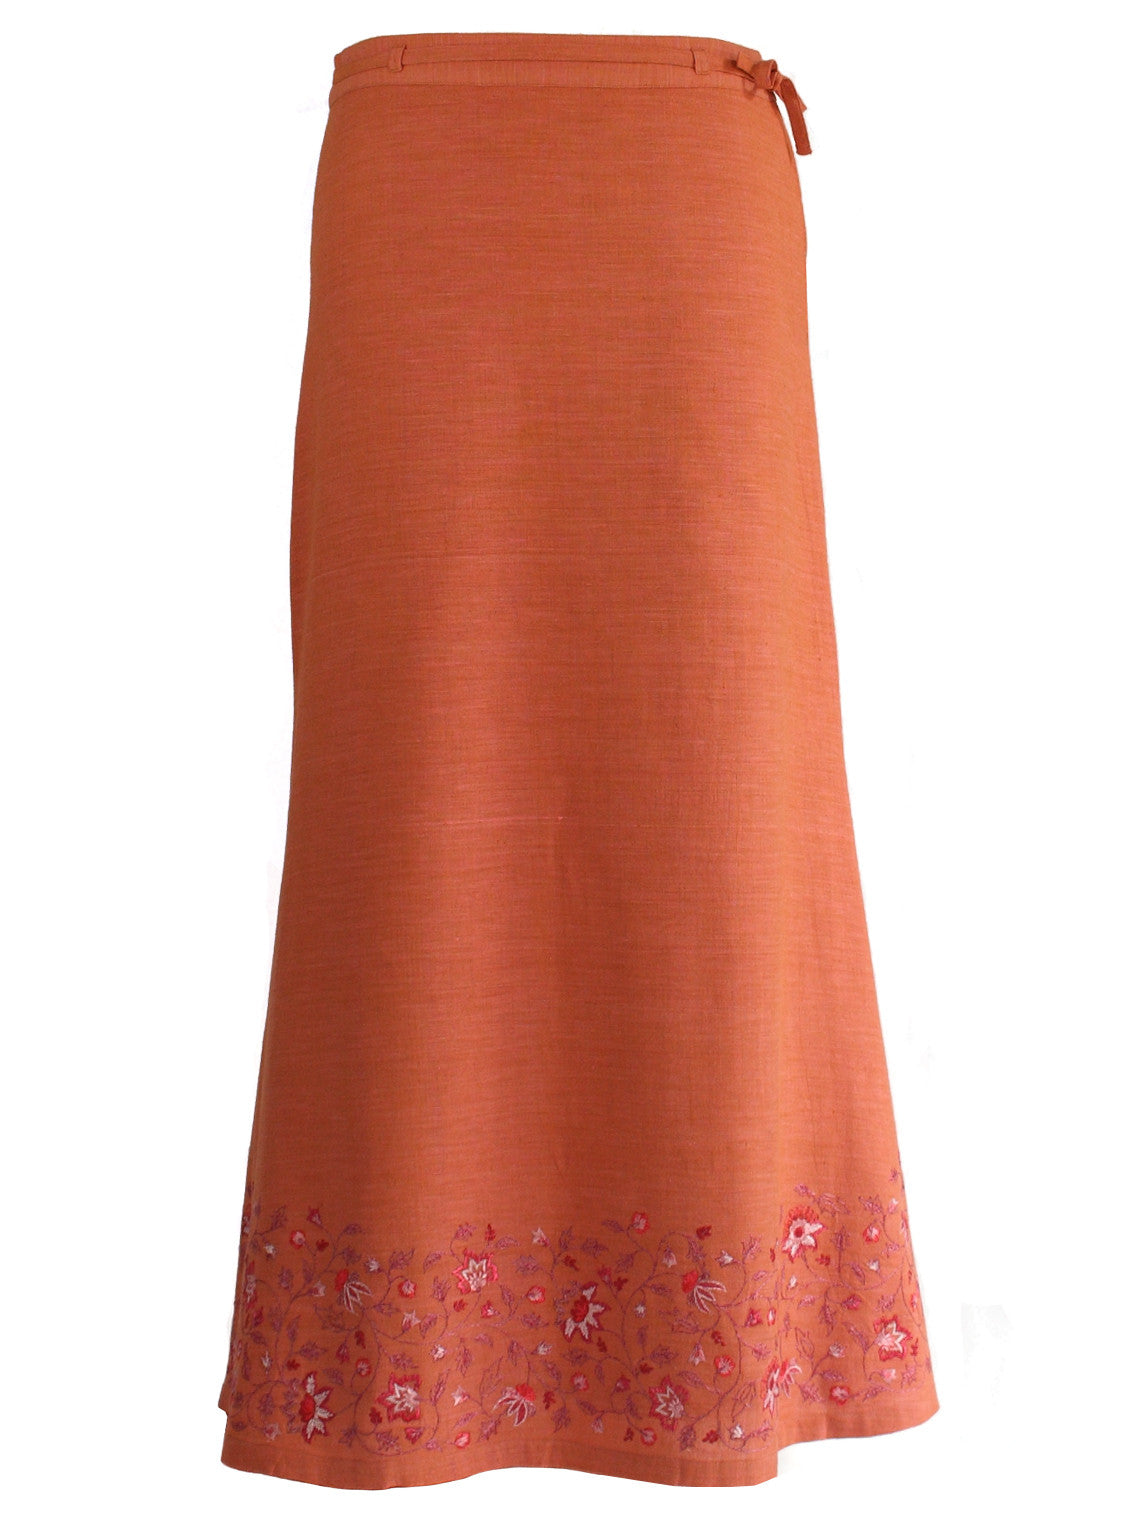 Ankle length Skirt in Orange Khadi with Floral Embroidery - MINC ecofashion